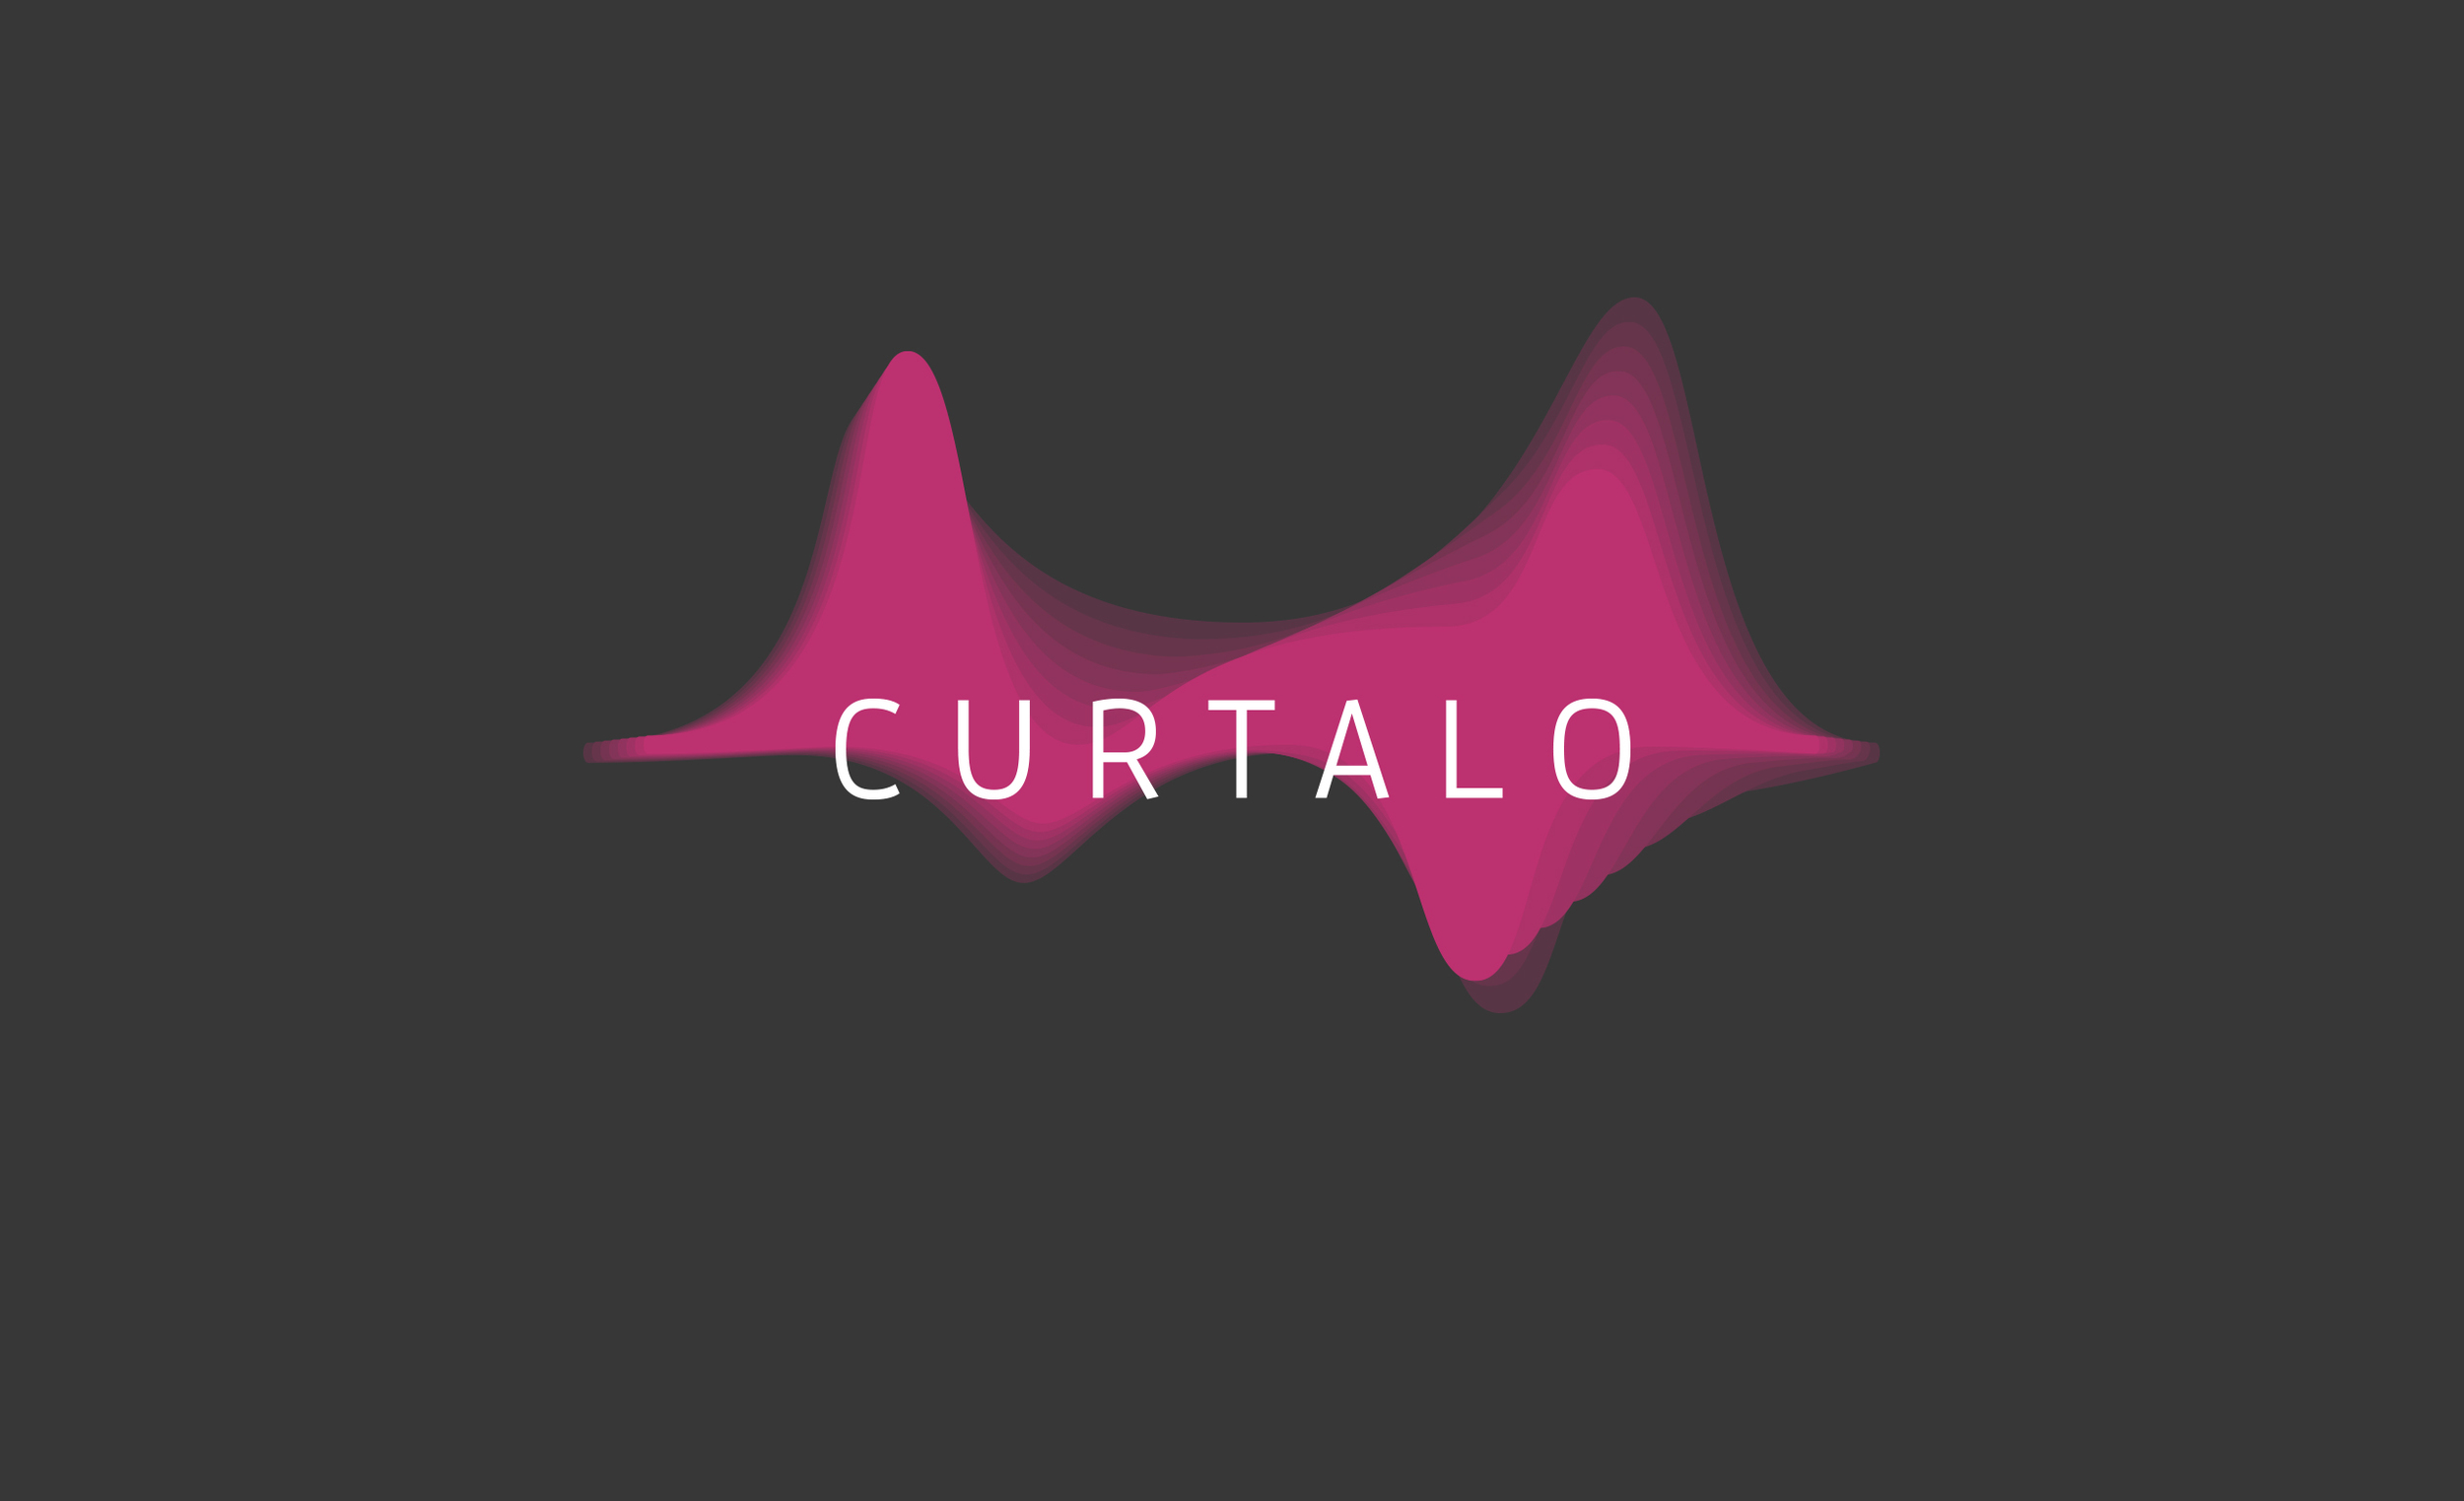 curtalo-animation_03.jpg